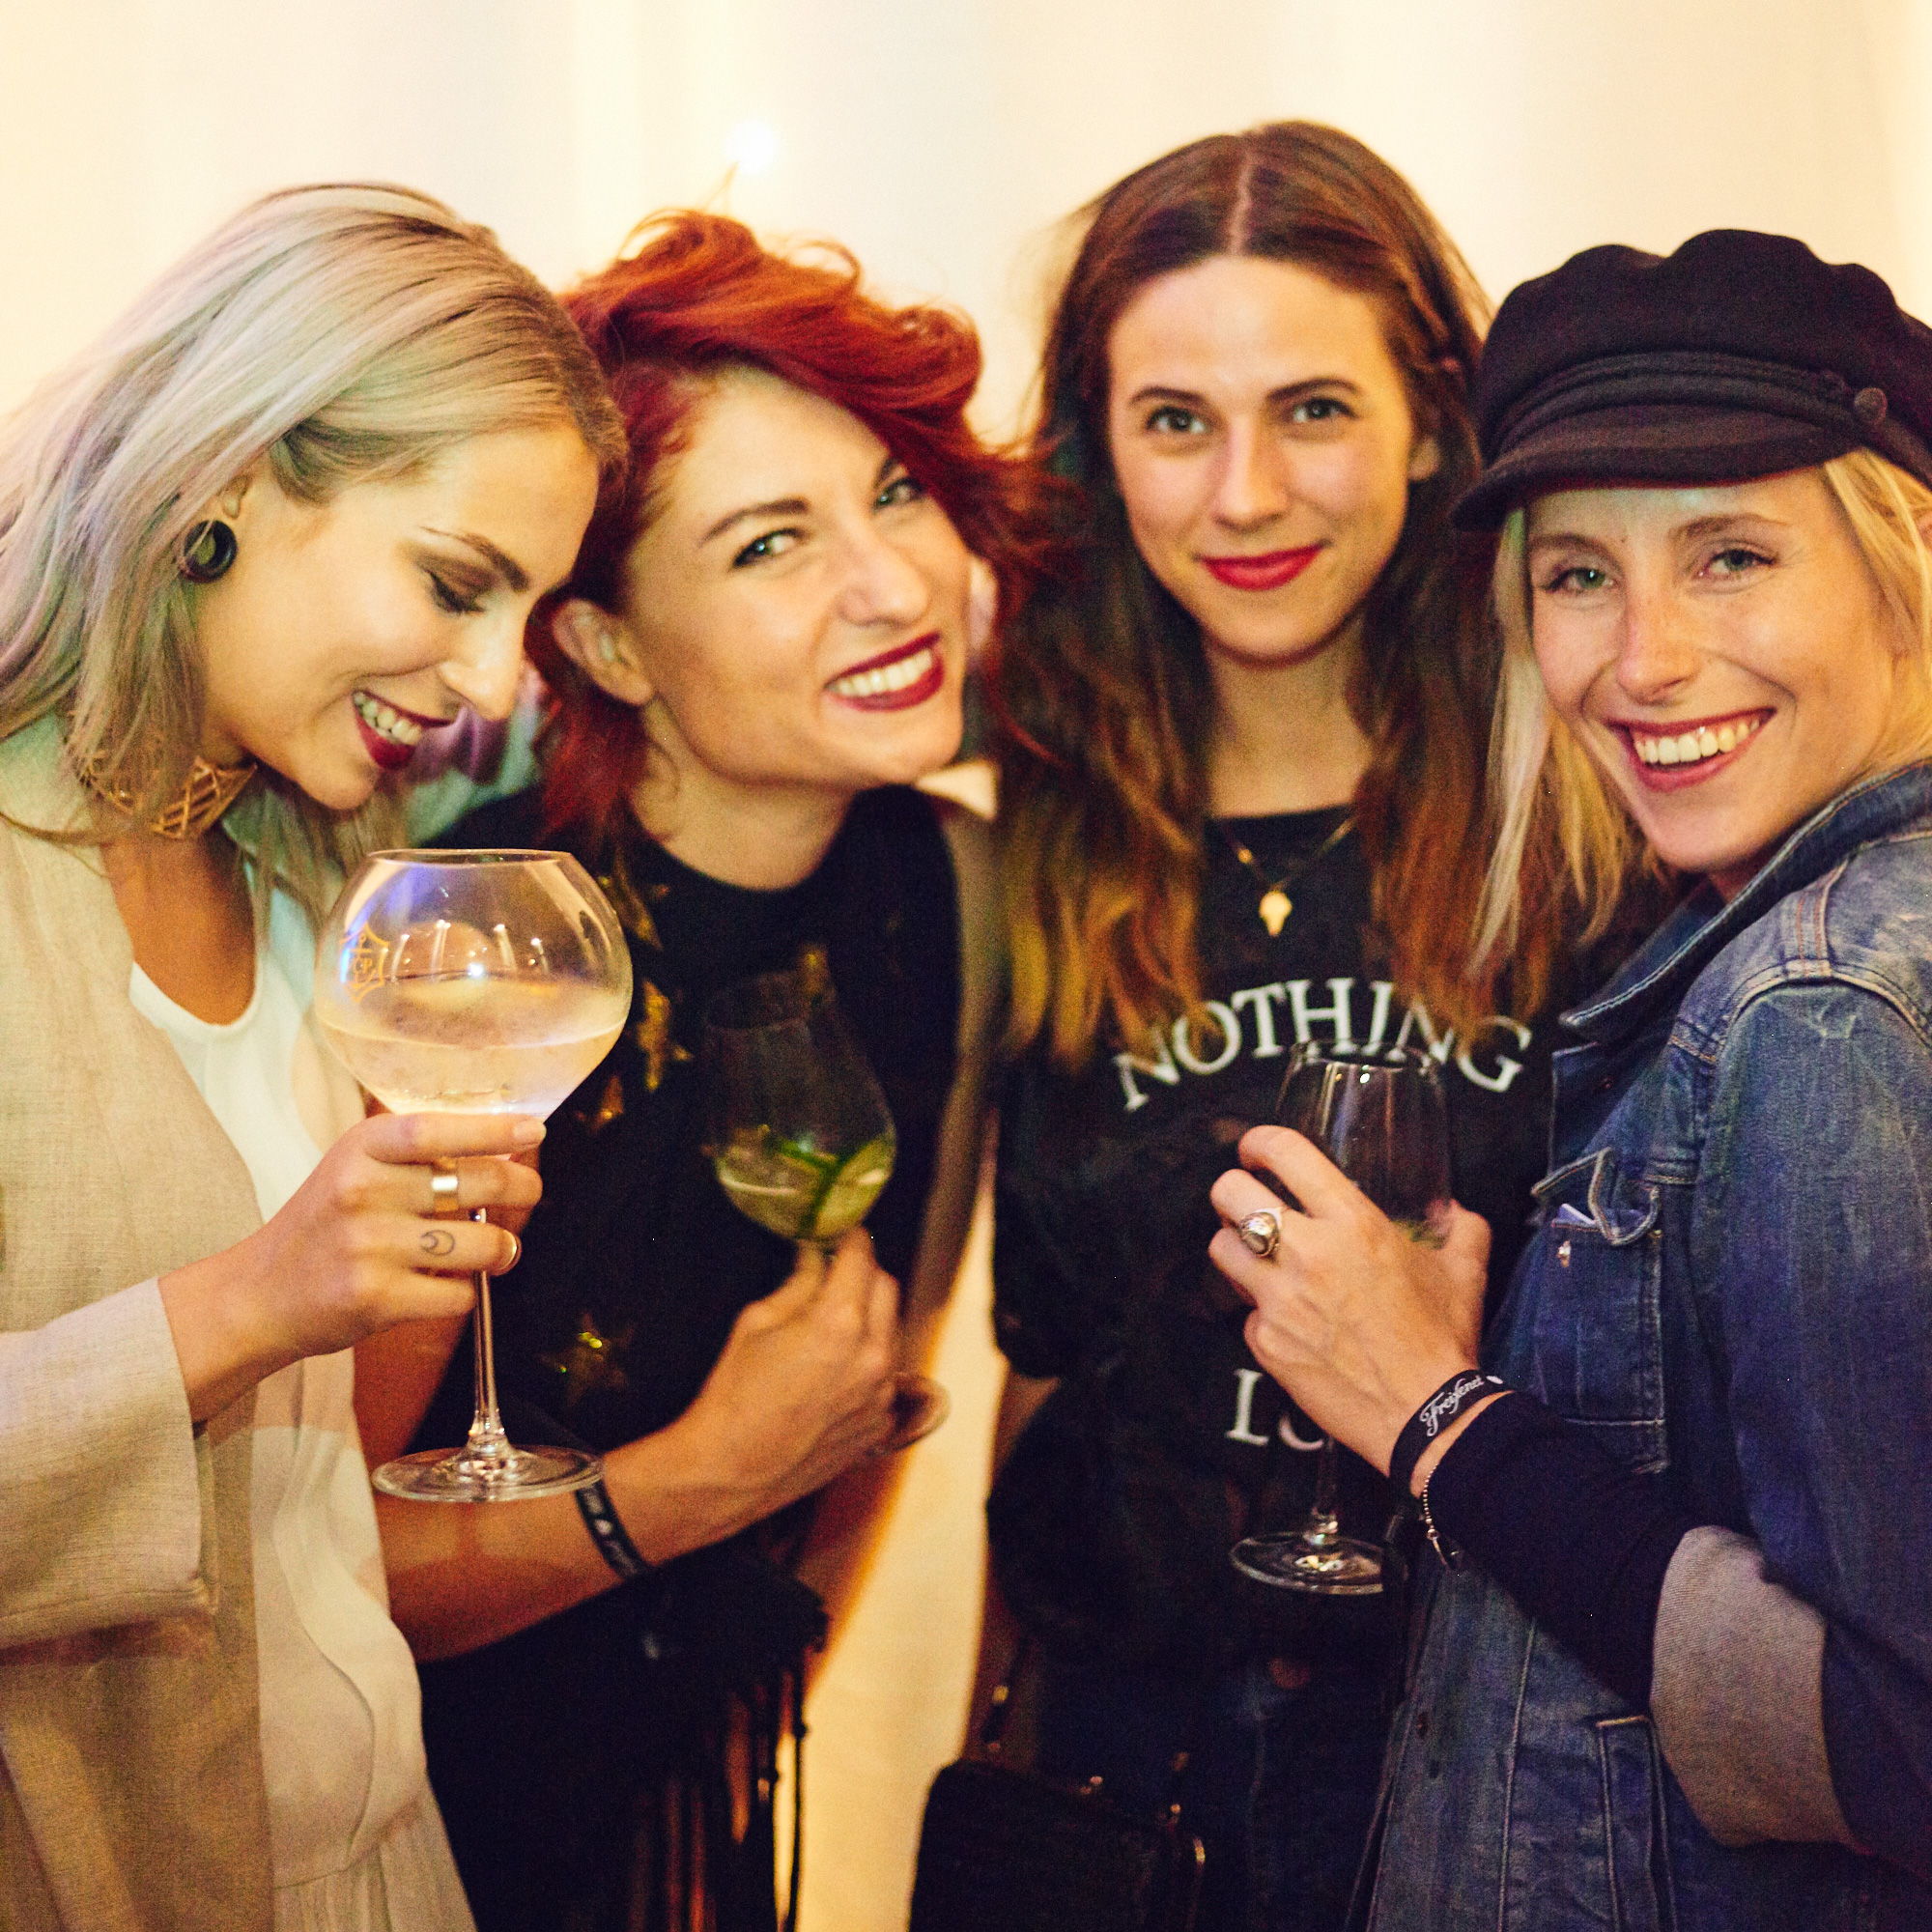 veuve-clicquot-marina-hoermanseder-after-show-party-1